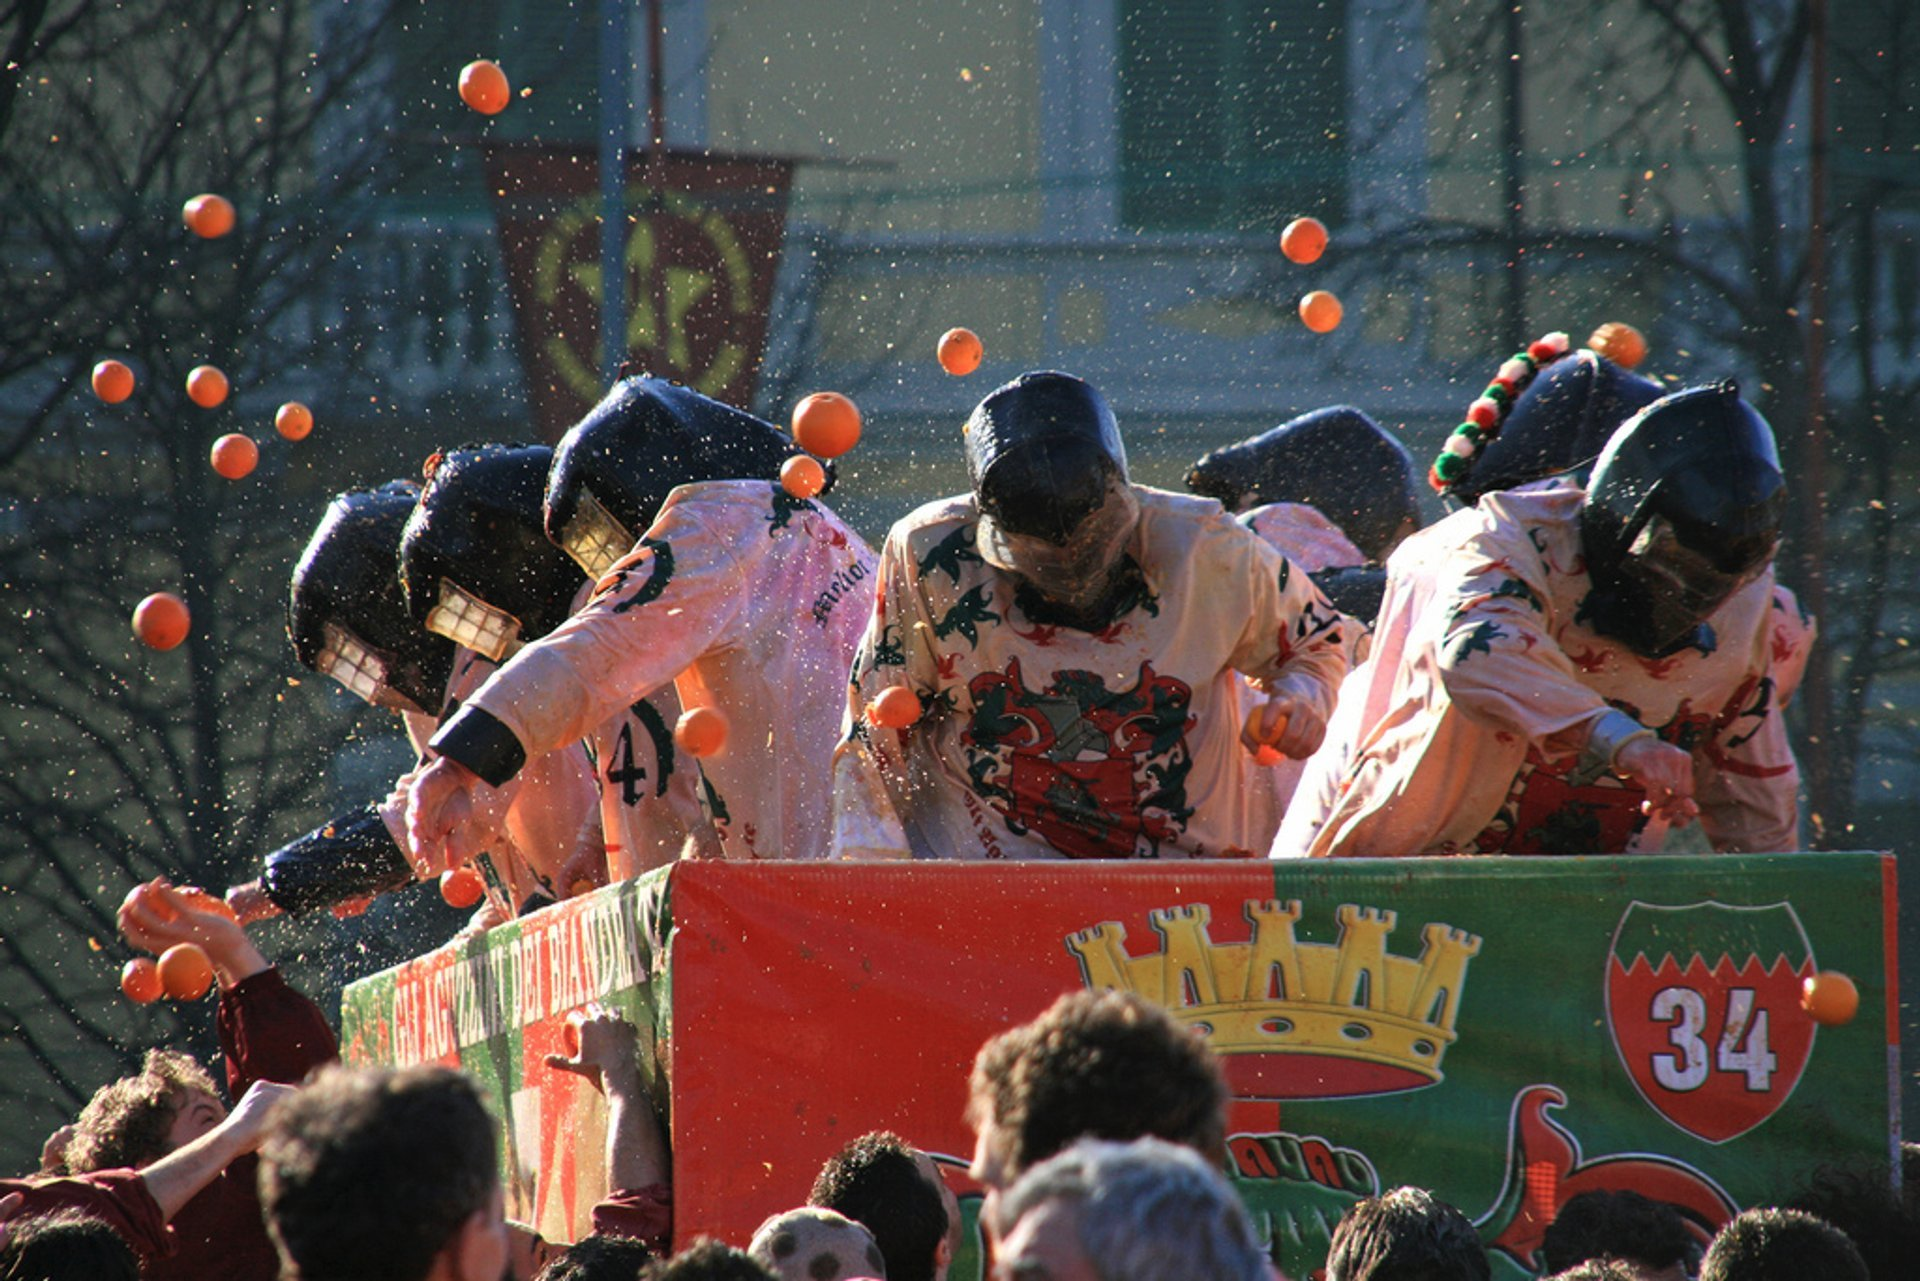 Ivrea Battle of the Oranges in Italy 2019 - Best Time